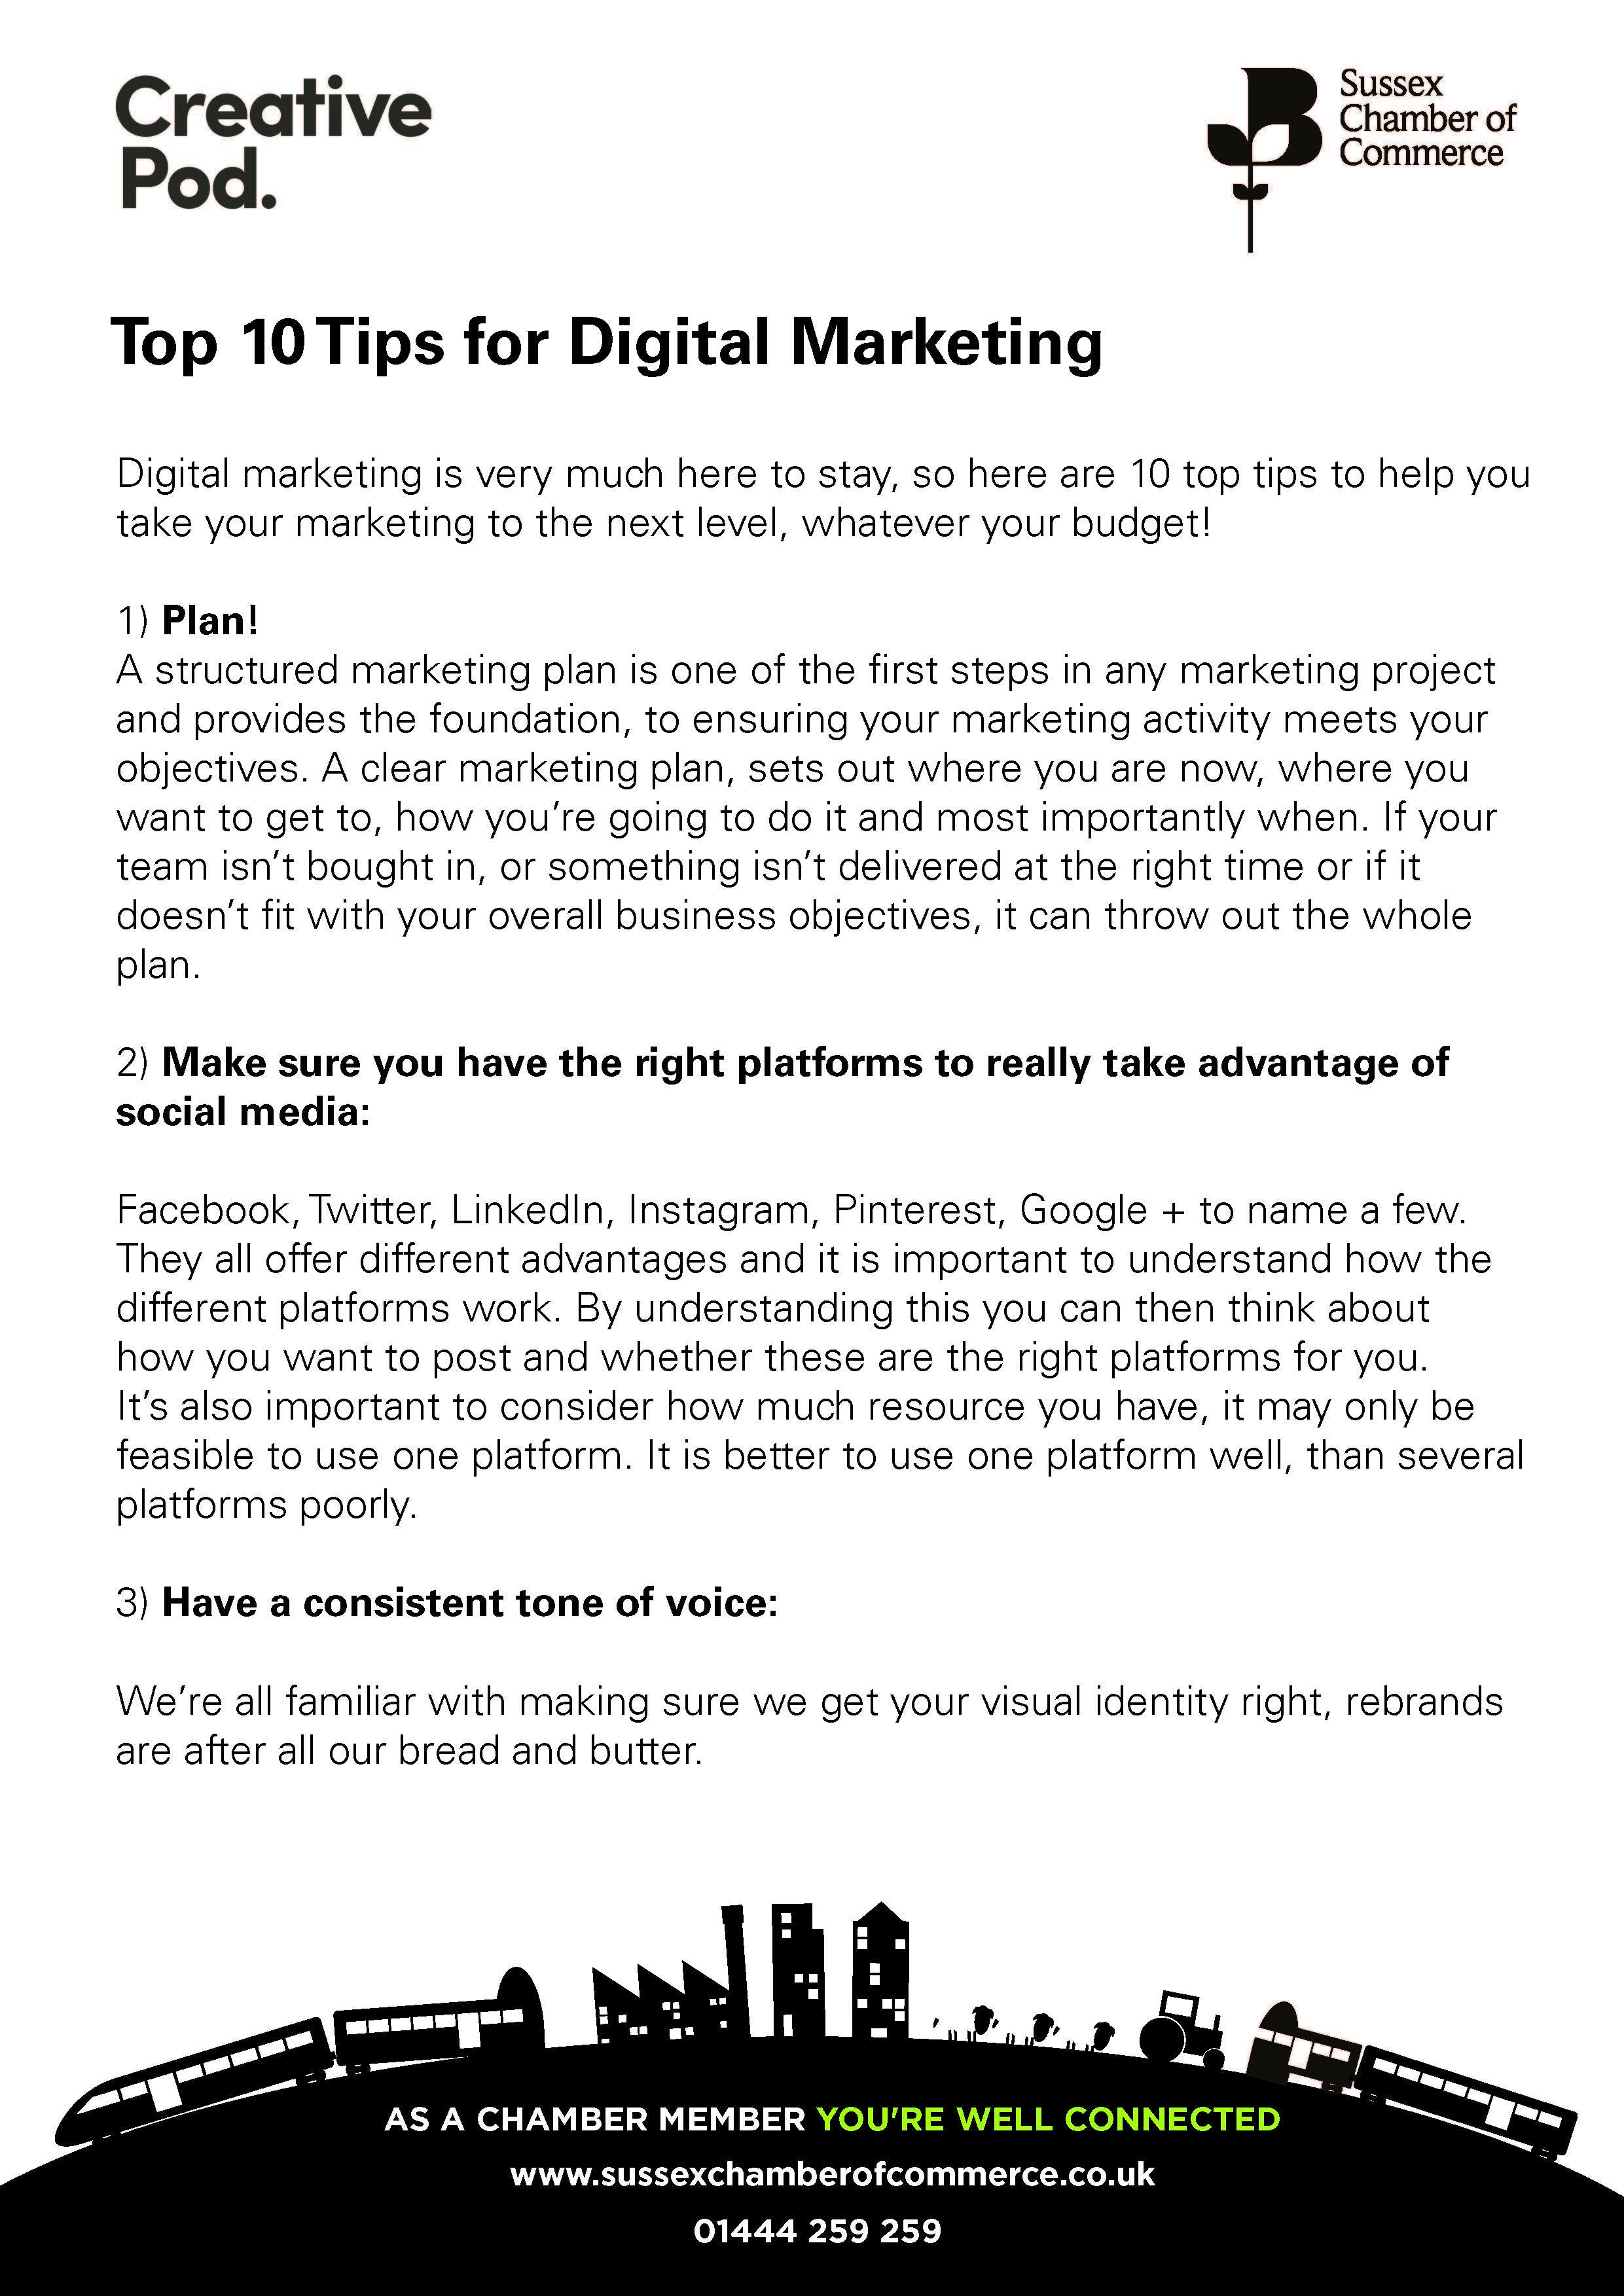 top_10_tips_for_digital_marketing_from_creative_pod_sc_edits_page_1_page_1_3508